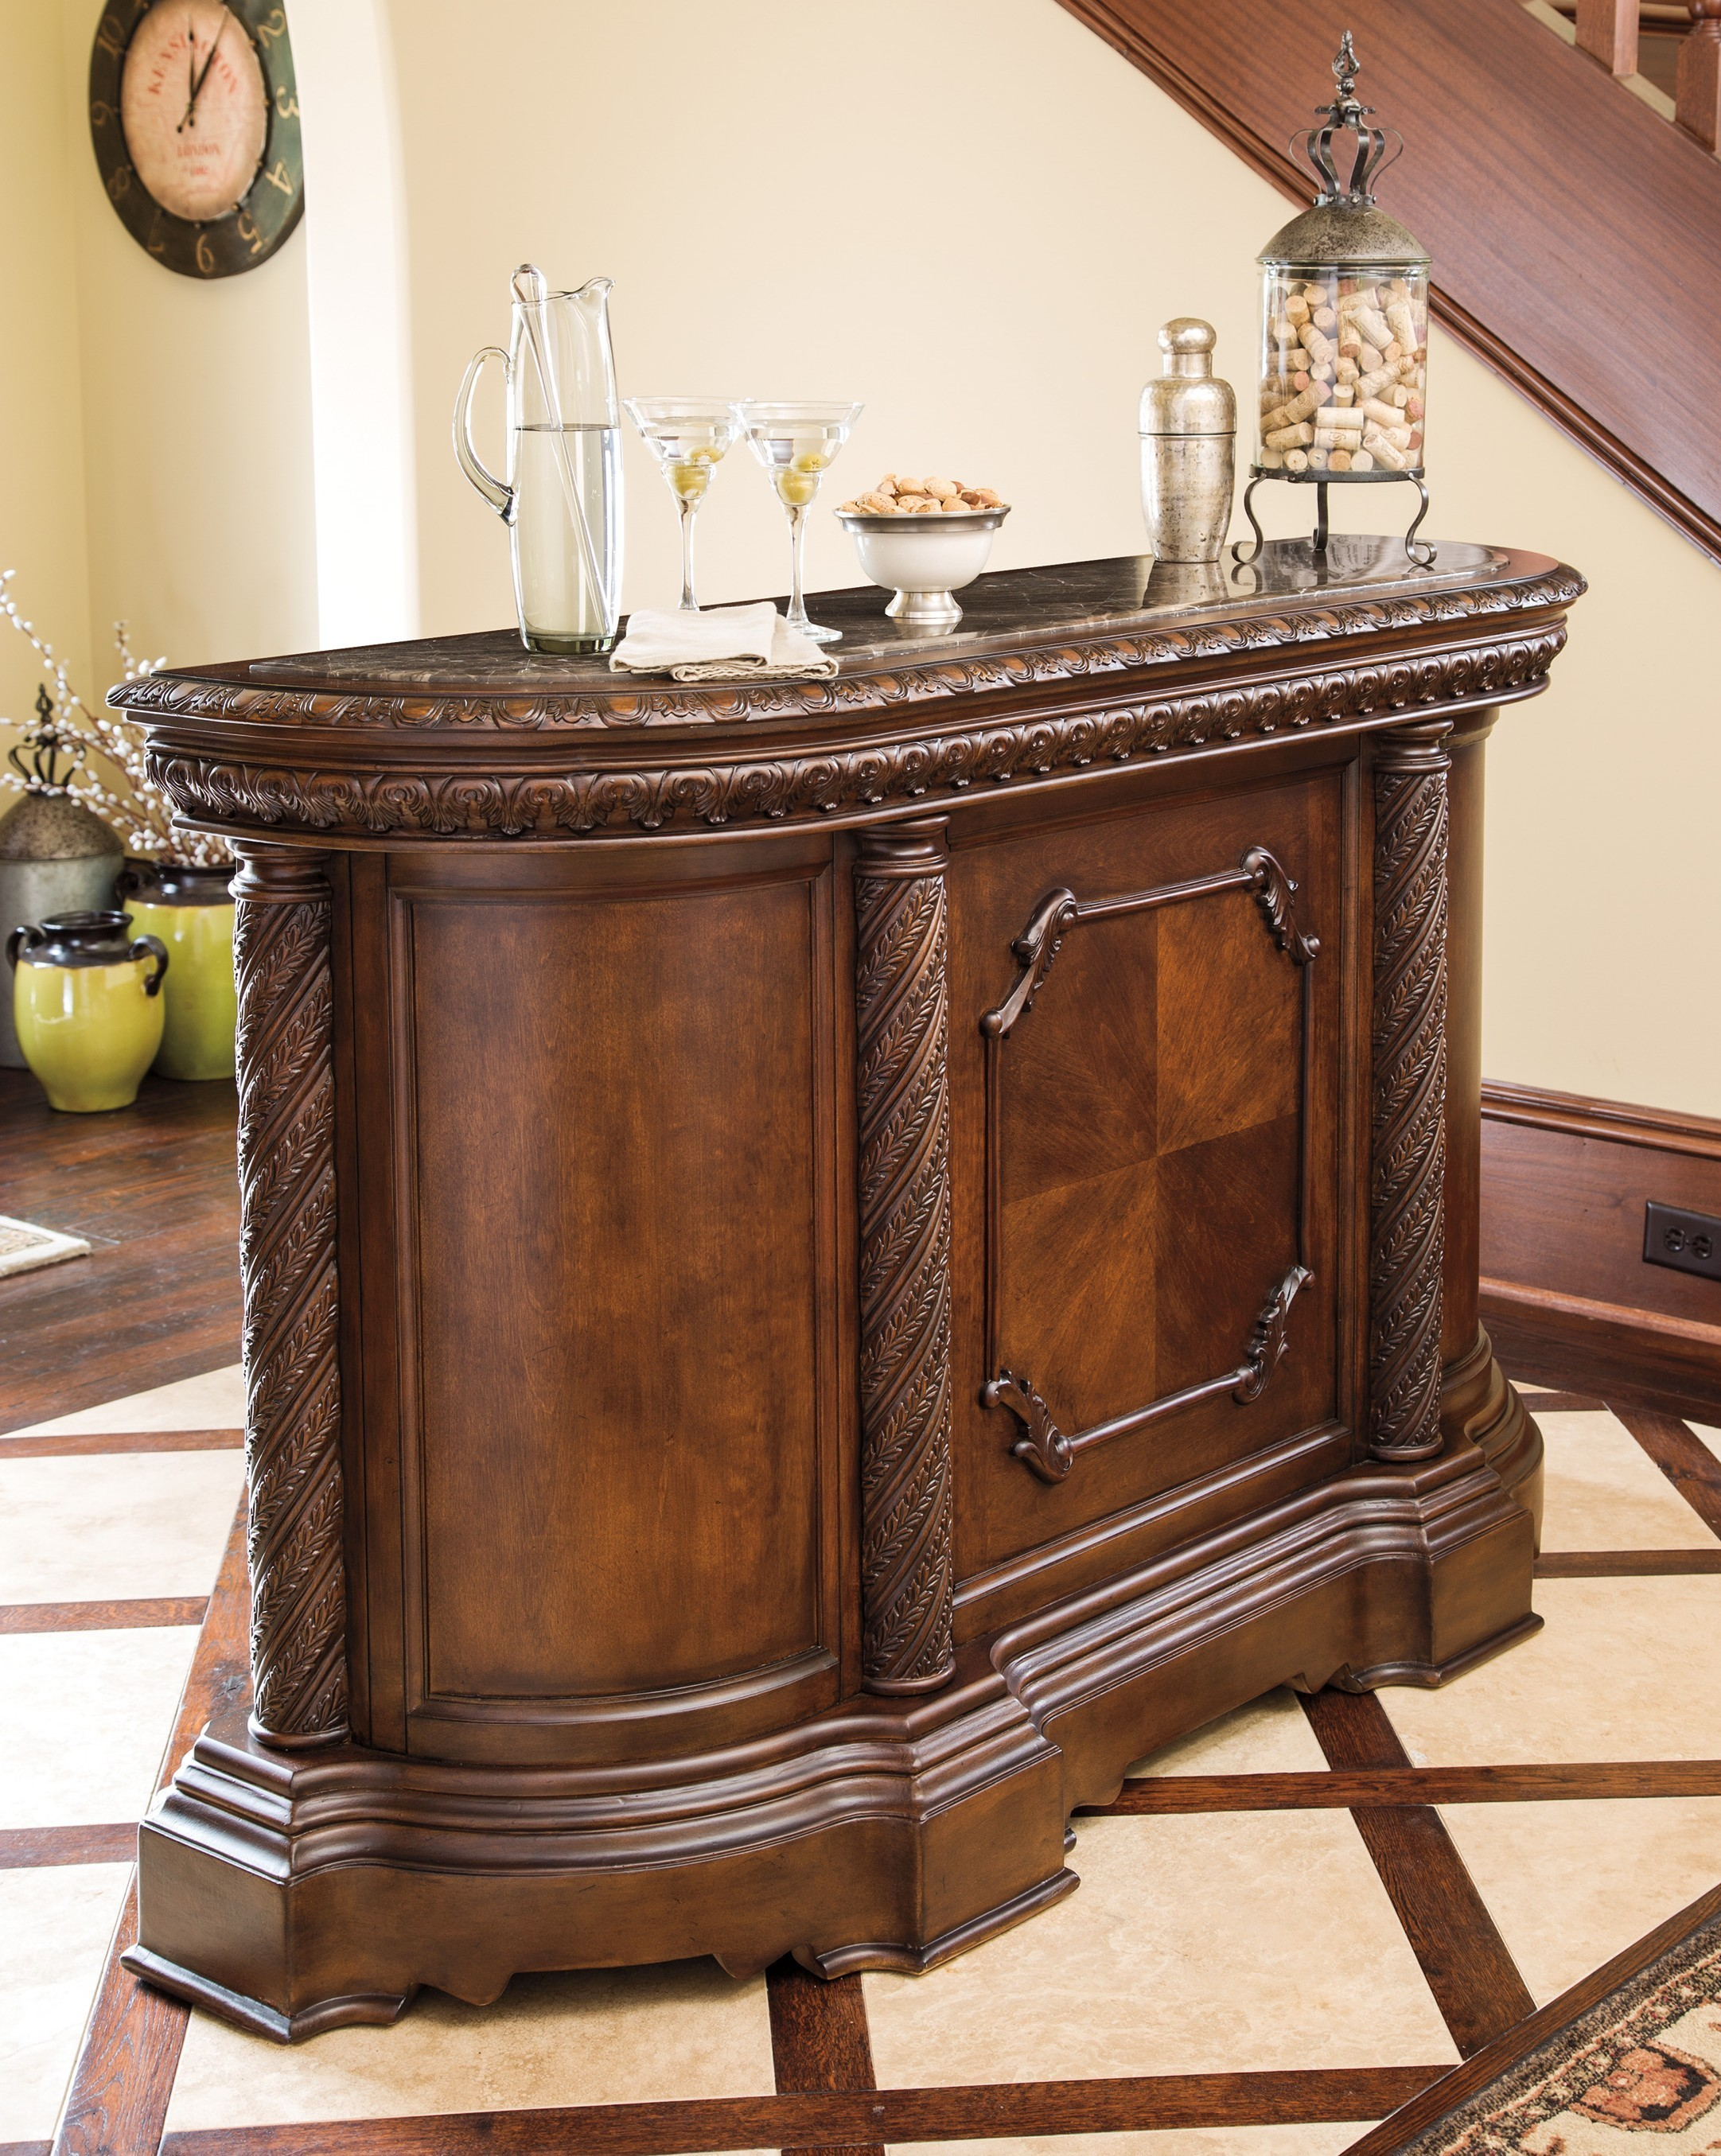 furniture elegant ashley north shore for home bar with marble top dining room idea wildon website reviews bedroom suites company end table iron and chairs unfinished wood accent